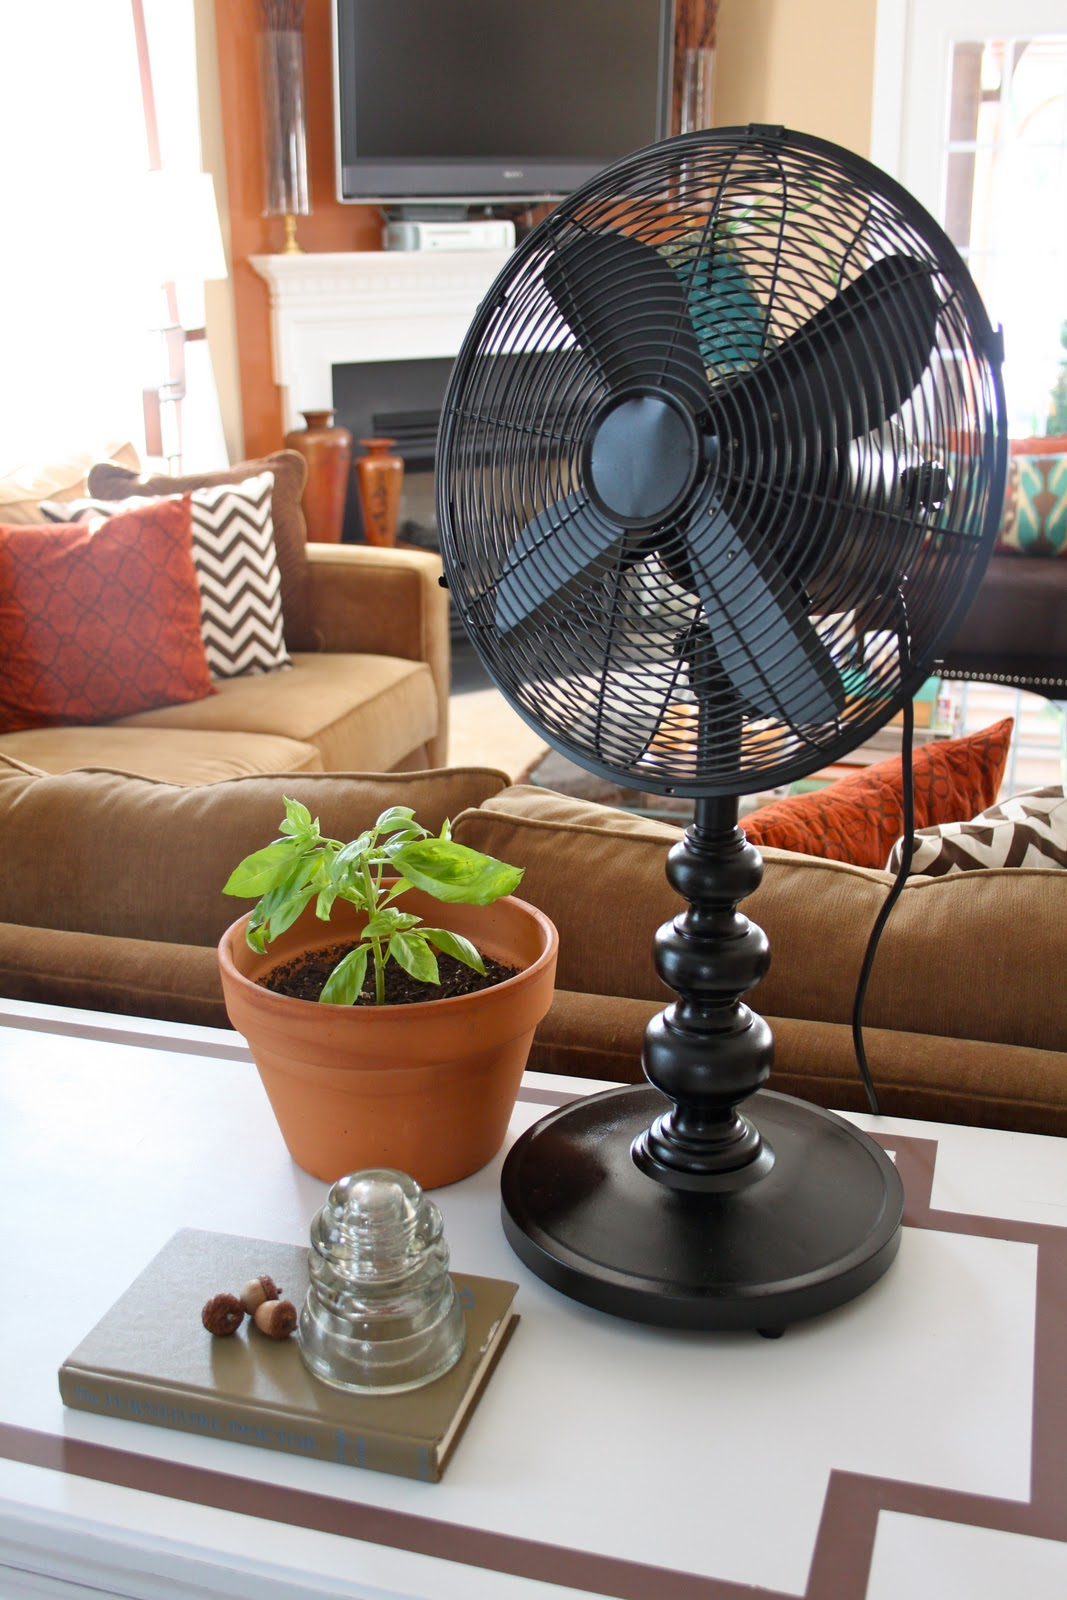 Decorative Table Fans : Dwellings by devore i love it when a plan comes together